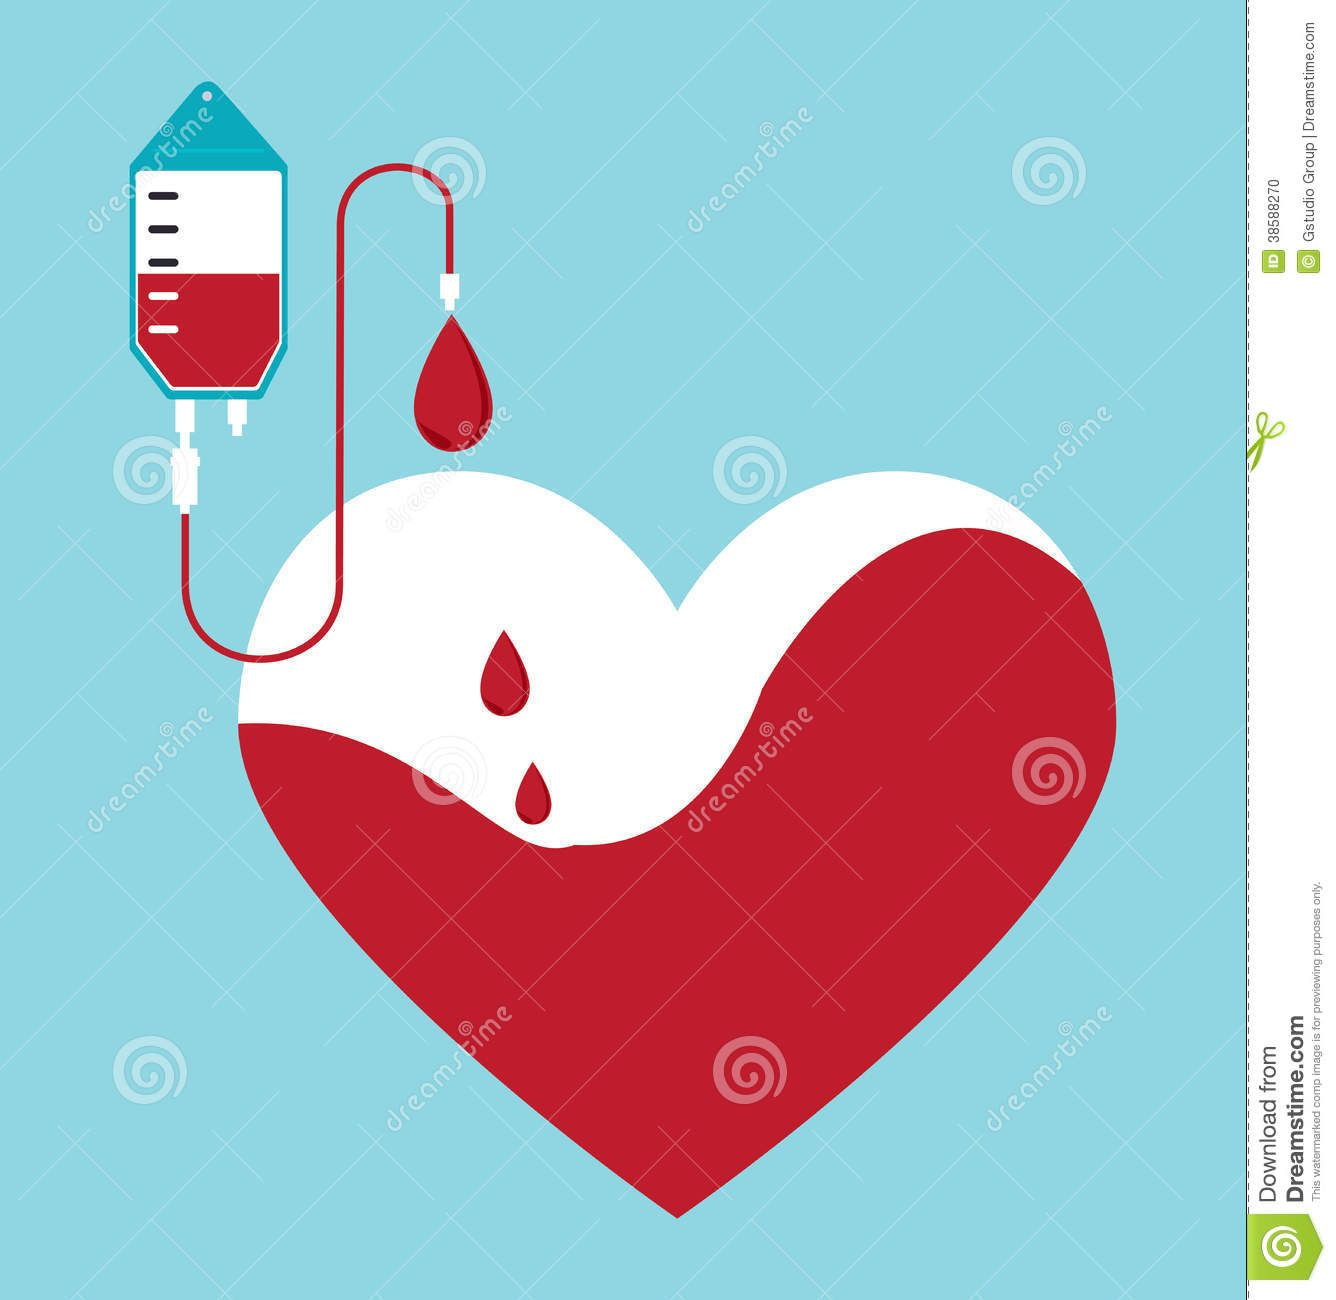 hight resolution of donating blood posters posters on blood donation clipart clipart email